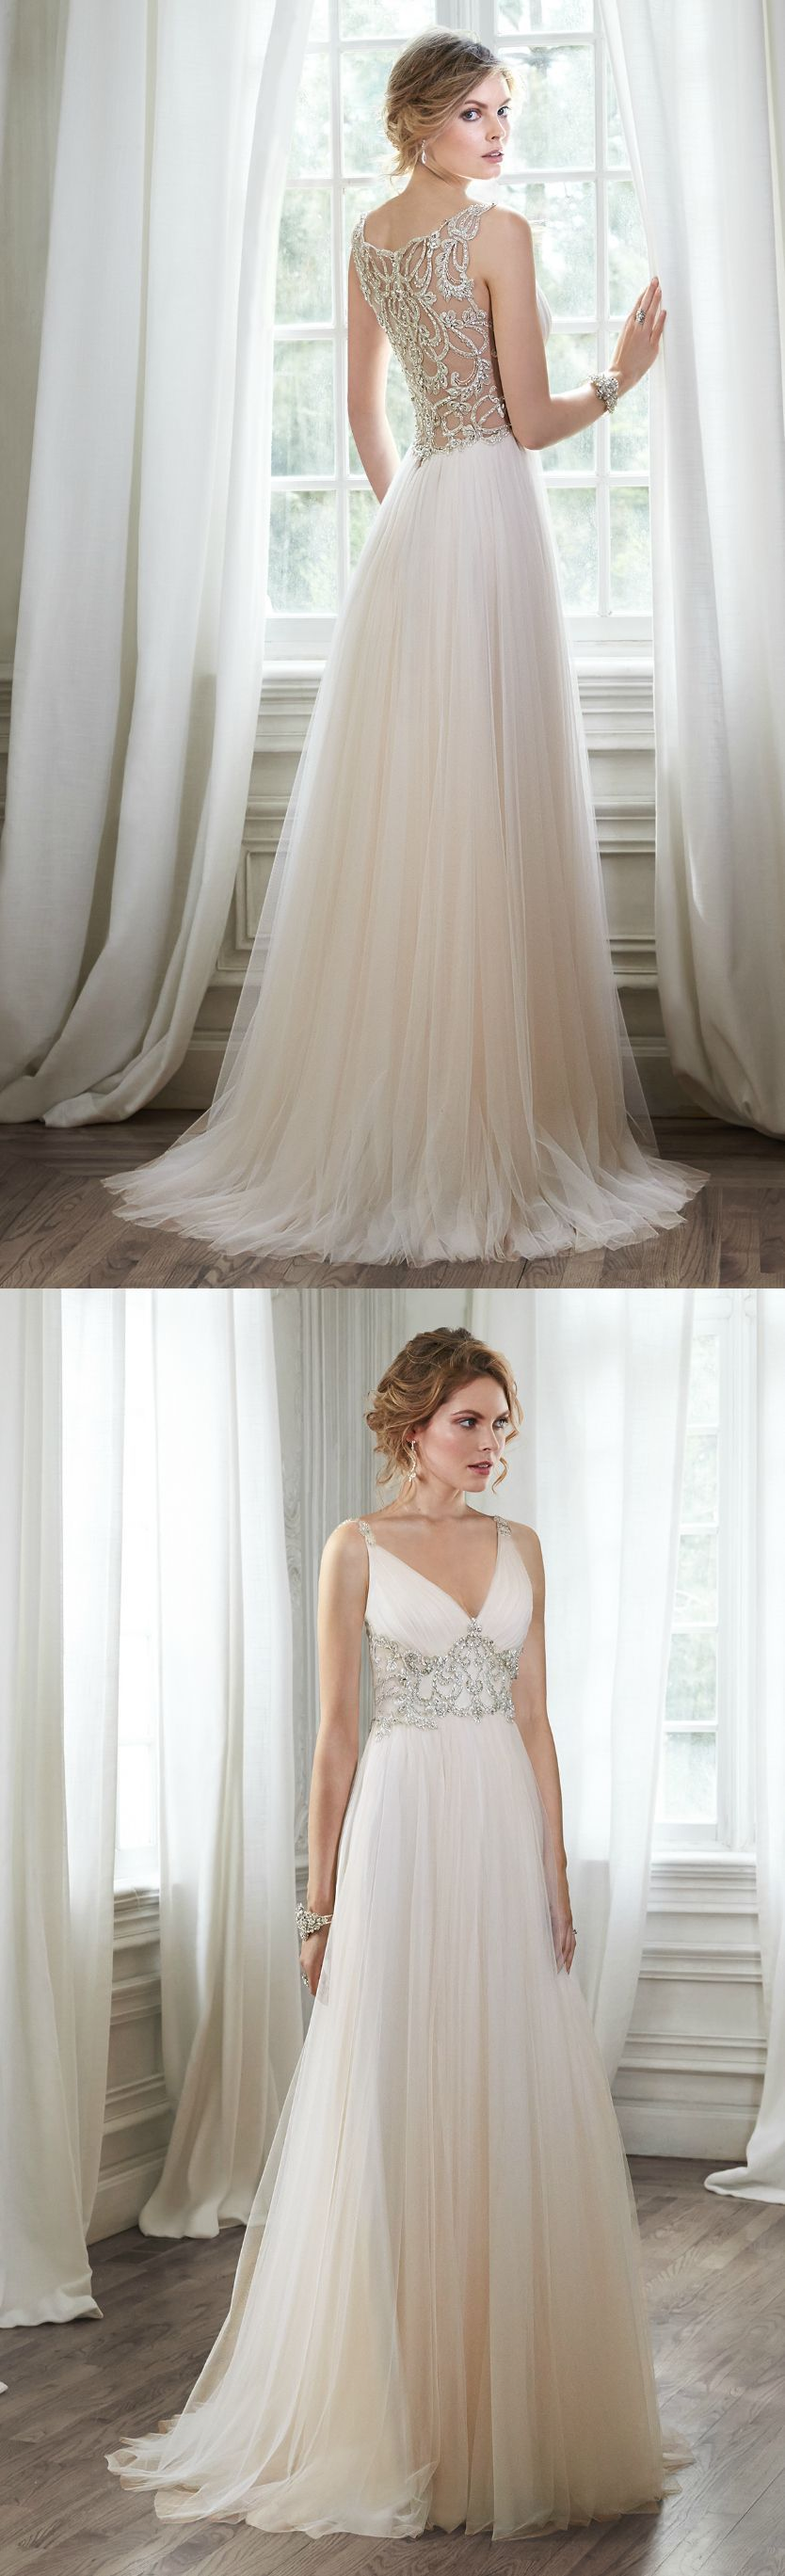 Maggie sottero phyllis the moderne bridal cork appointments